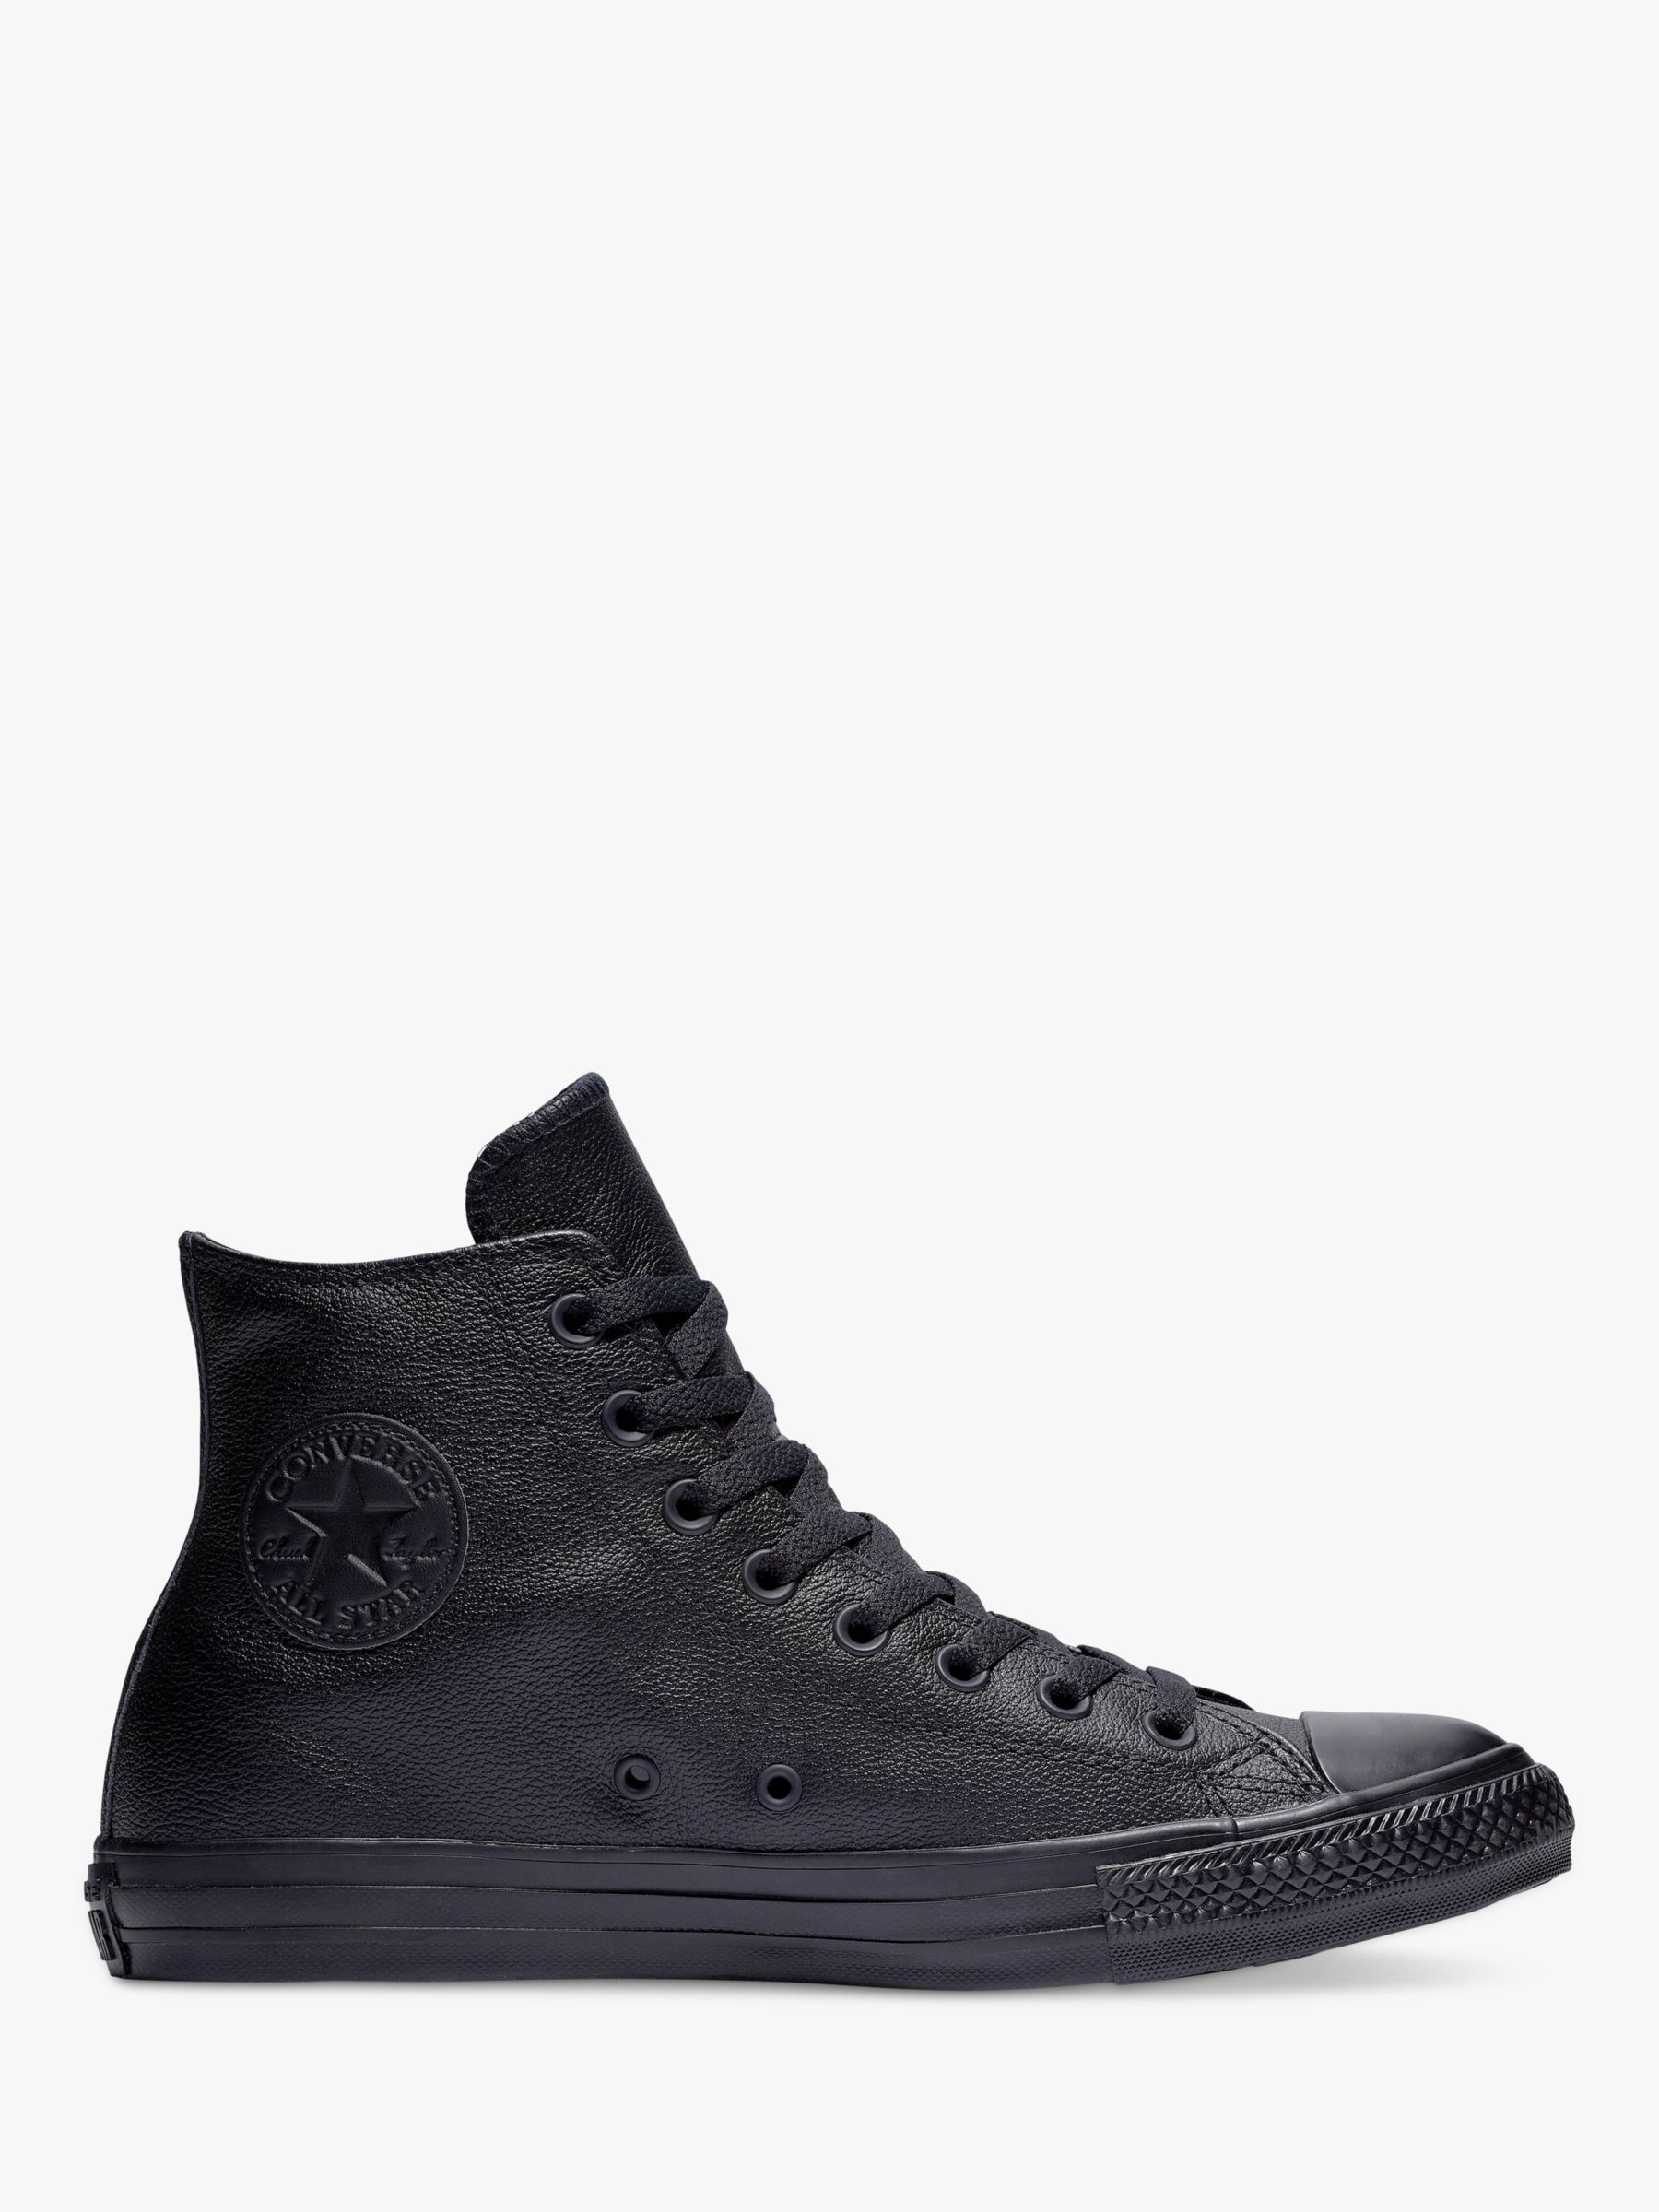 proteger Bigote Idear  Converse Chuck Taylor All Star Leather Hi-Top Trainers, Black Mono at John  Lewis & Partners